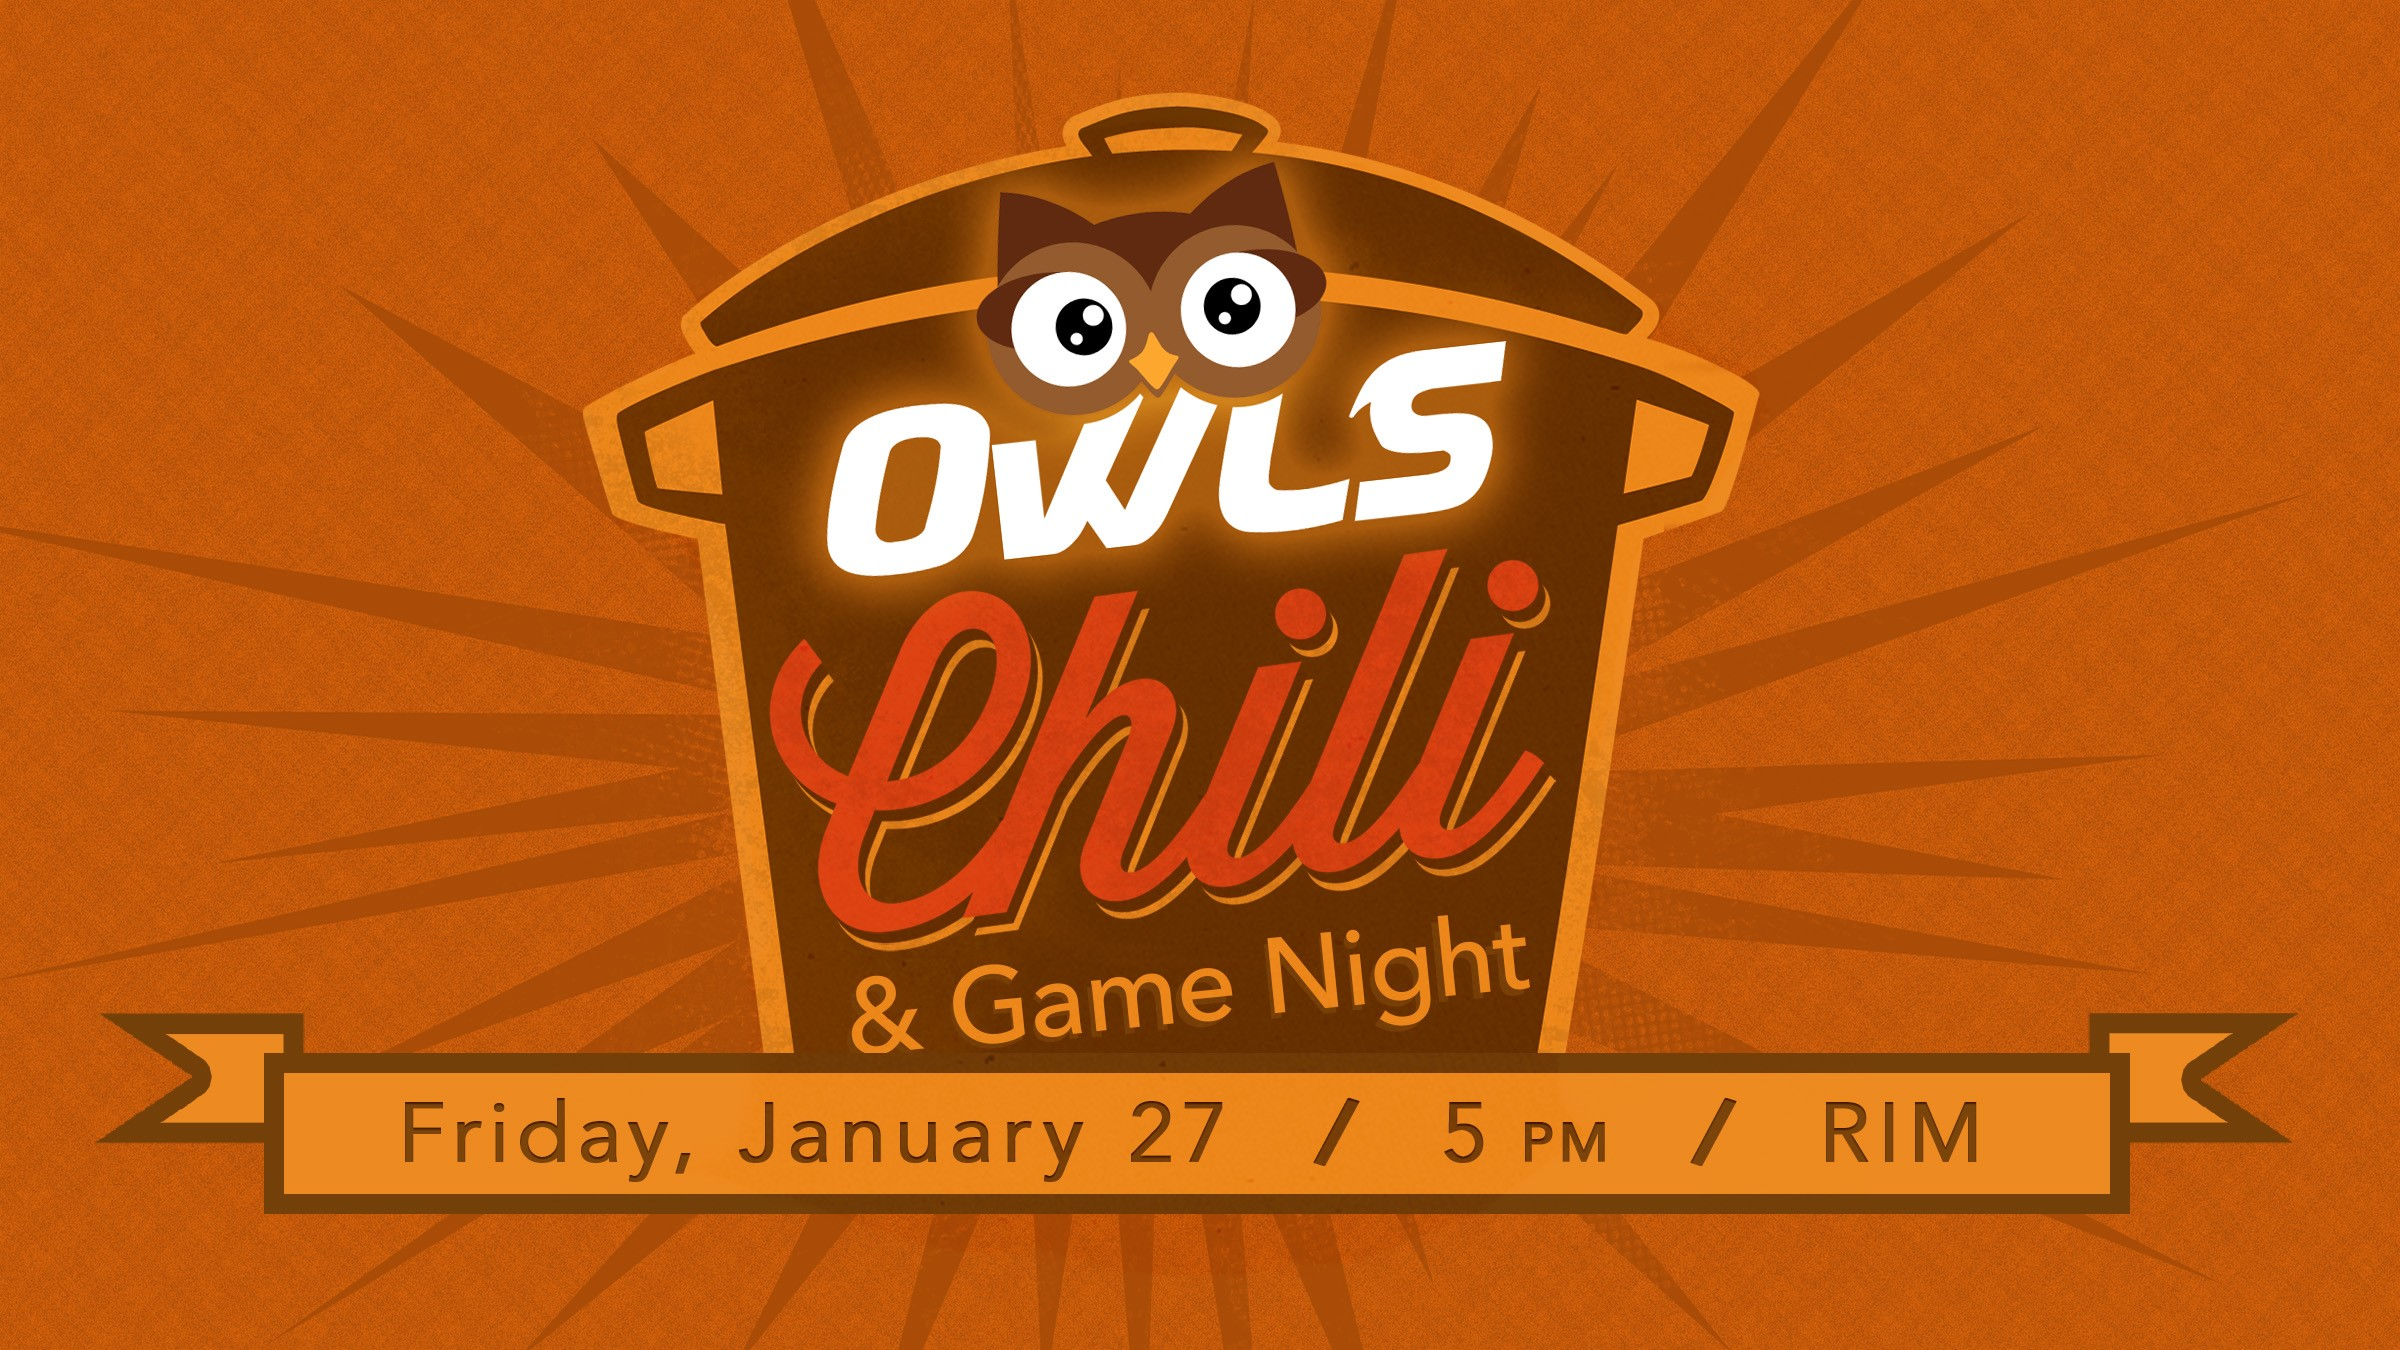 OWLS Chili & Game Night (Adults 55+)